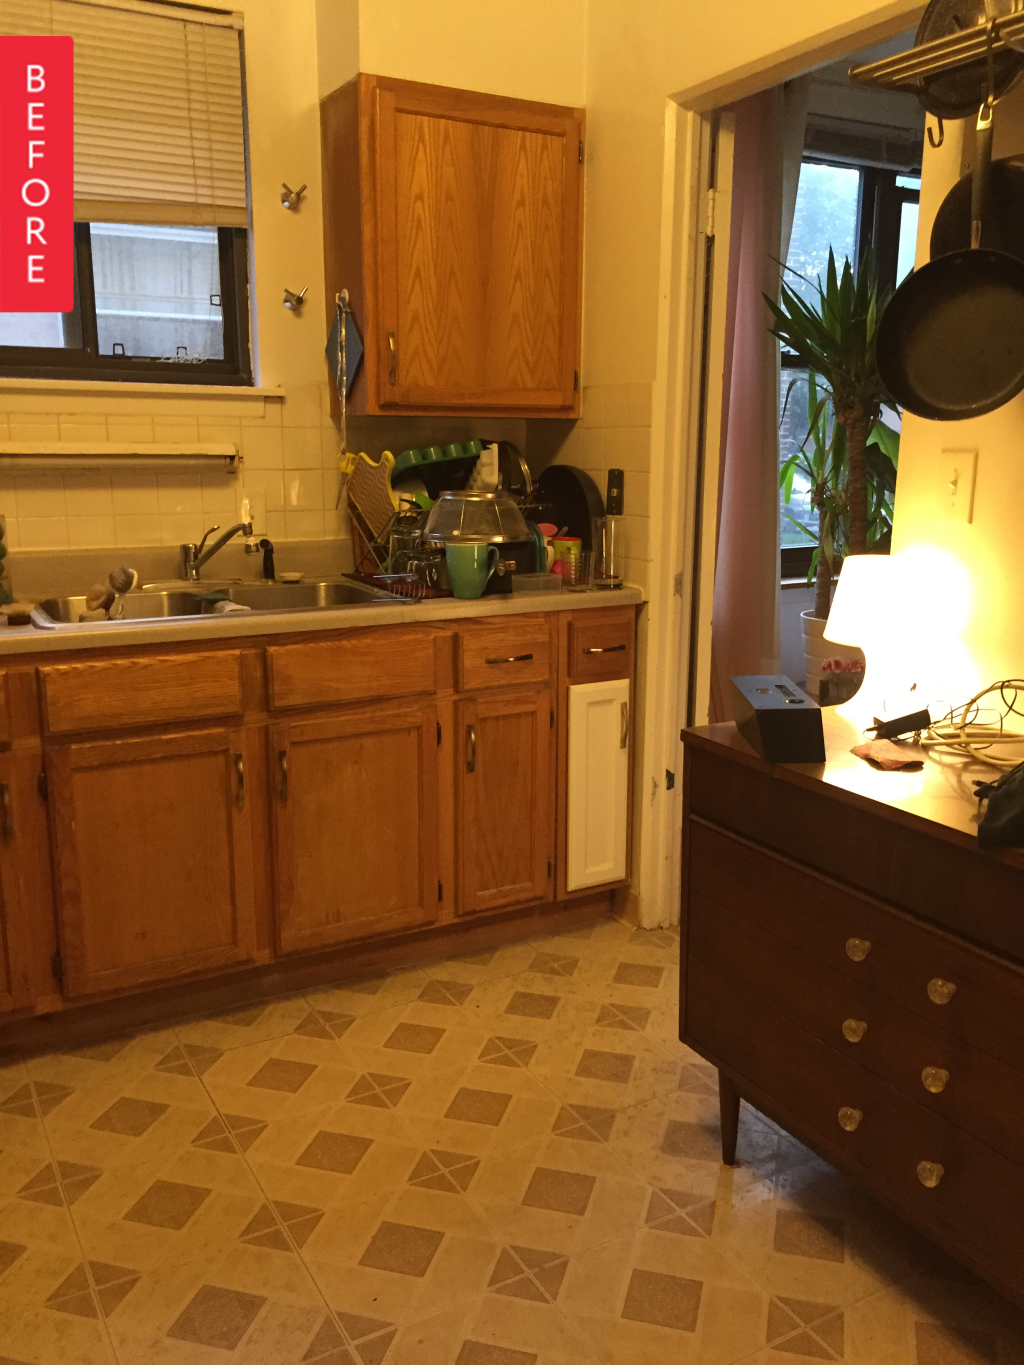 Before & After: An Unbelievably Chic Rental Kitchen Makeover